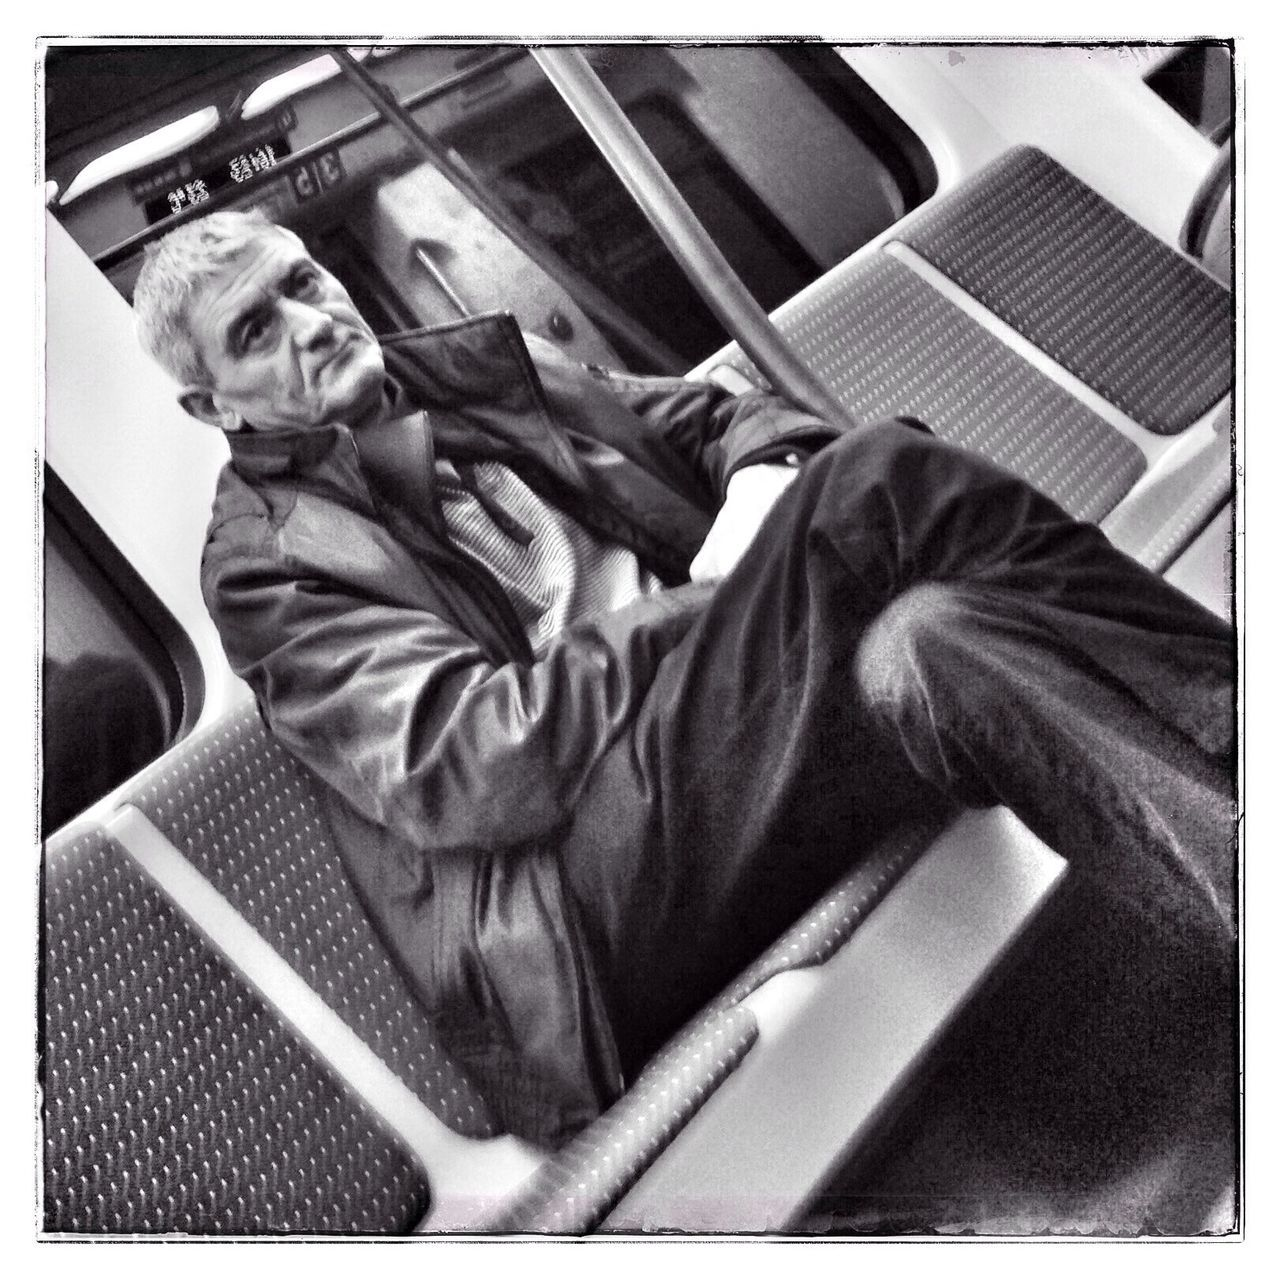 Blackandwhite Oggl Subway Streetphotography